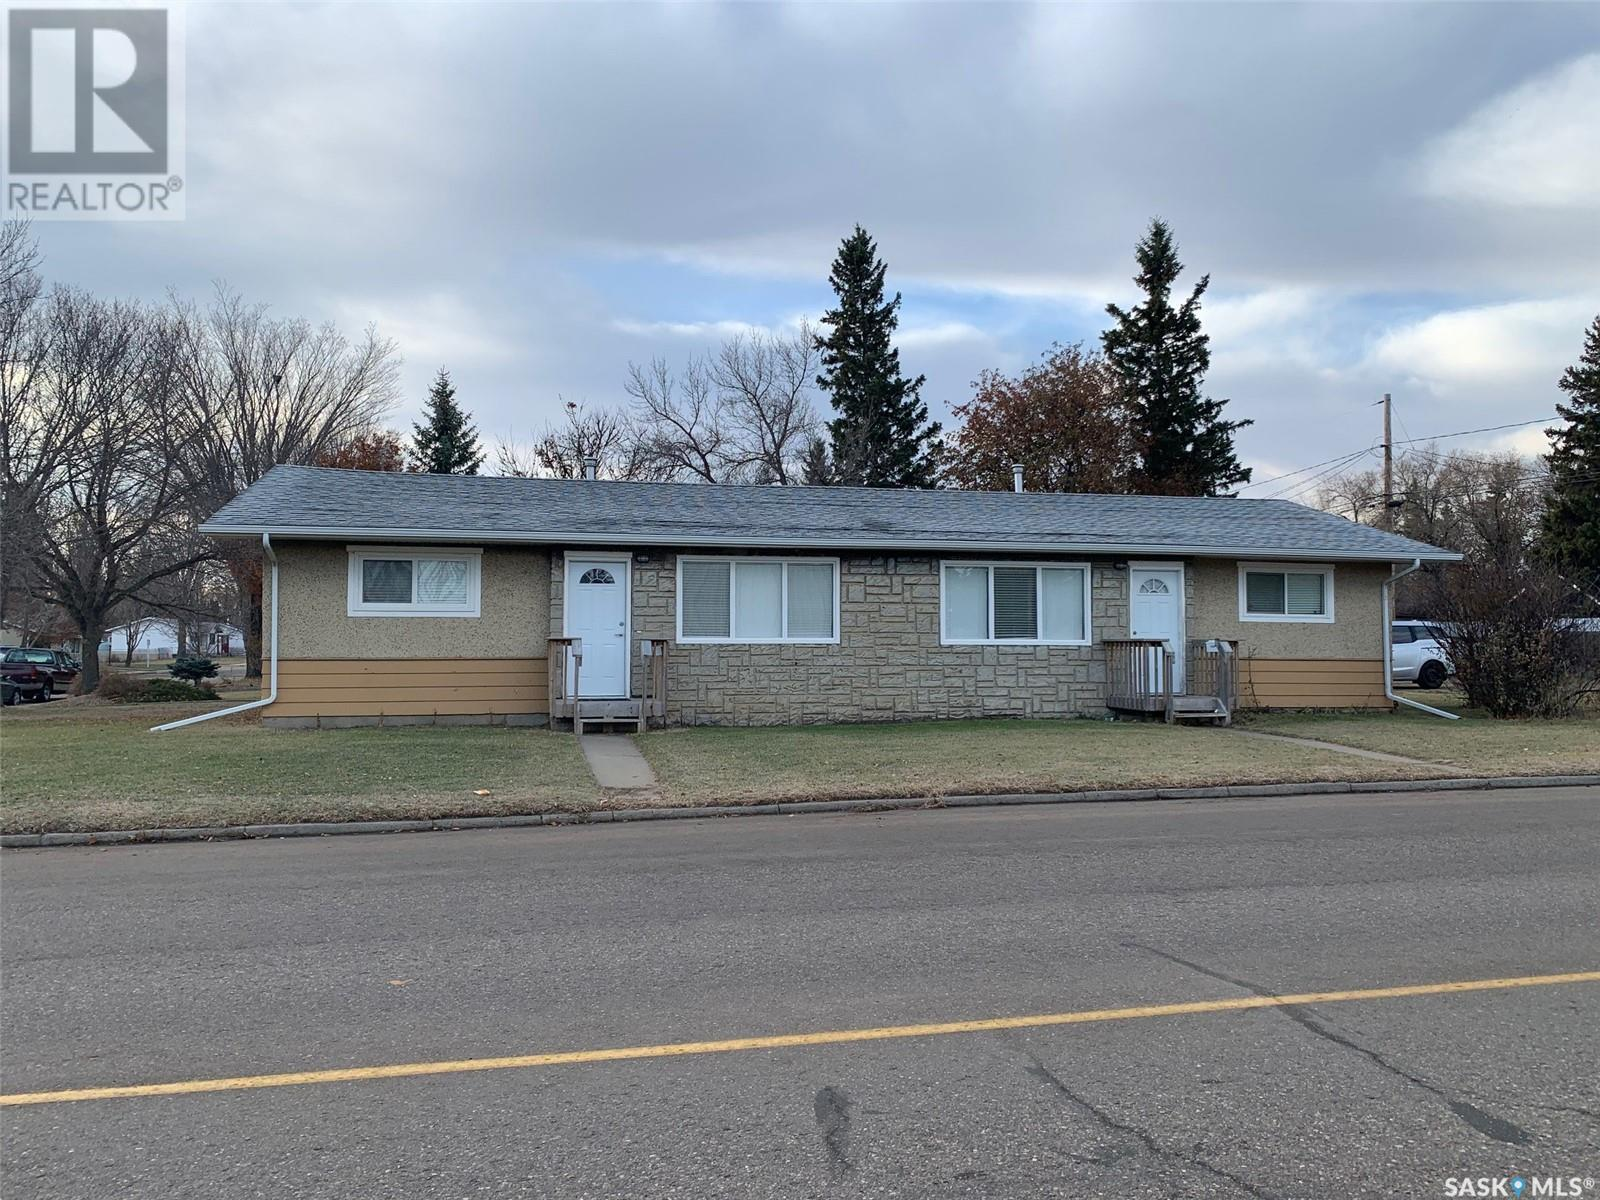 1761 104th ST, North Battleford, Saskatchewan, Canada S9A1P8, 4 Bedrooms Bedrooms, Register to View ,2 BathroomsBathrooms,Duplex,For Sale,SK851777